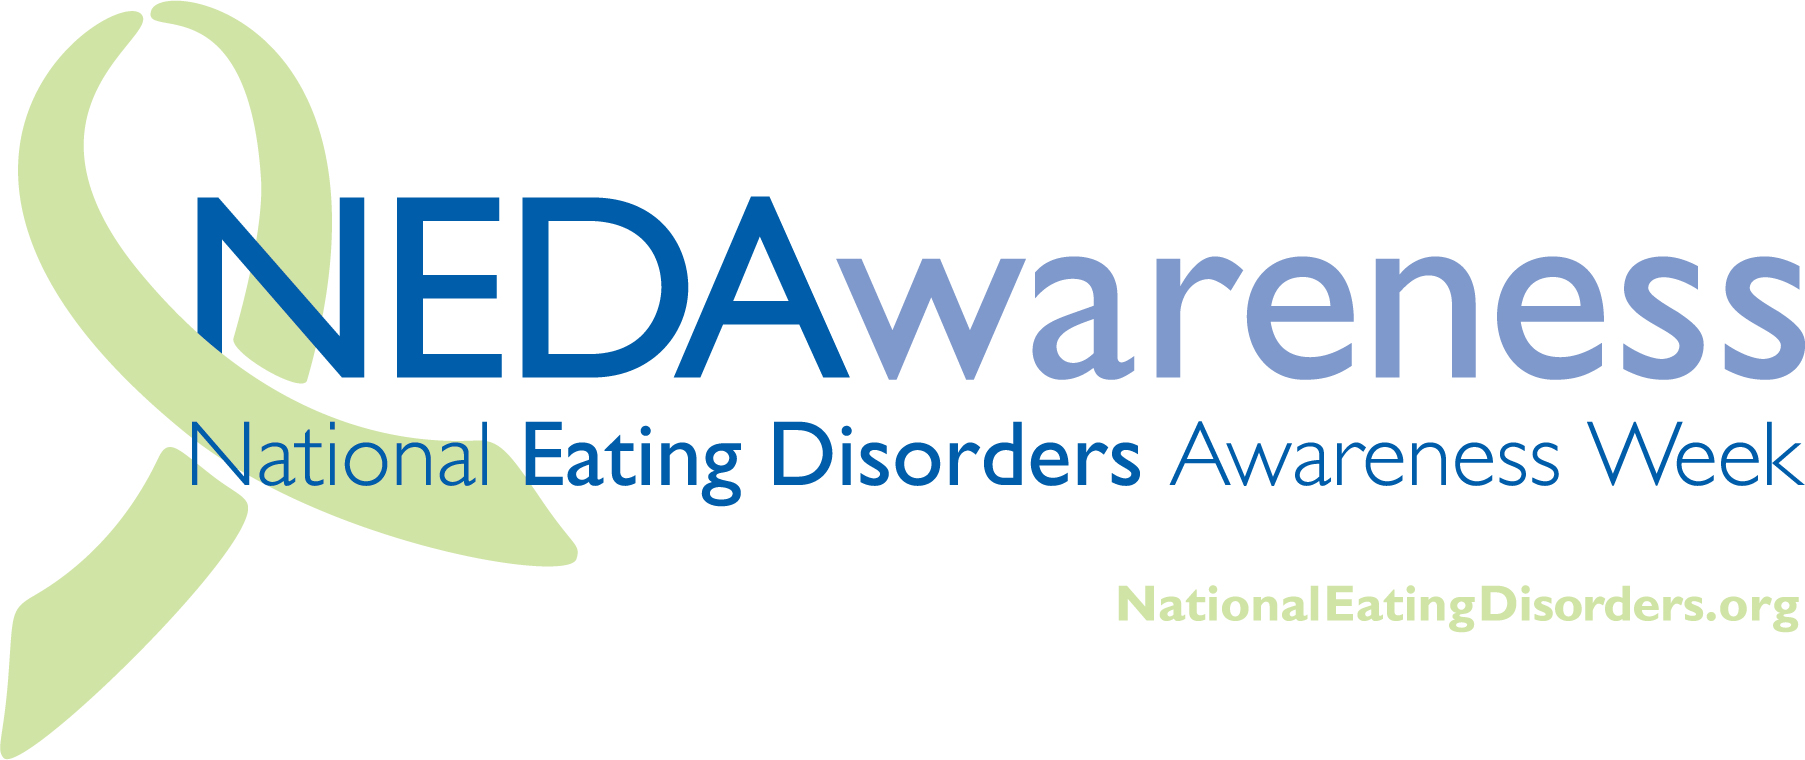 a poem honoring national eating disorder awareness week